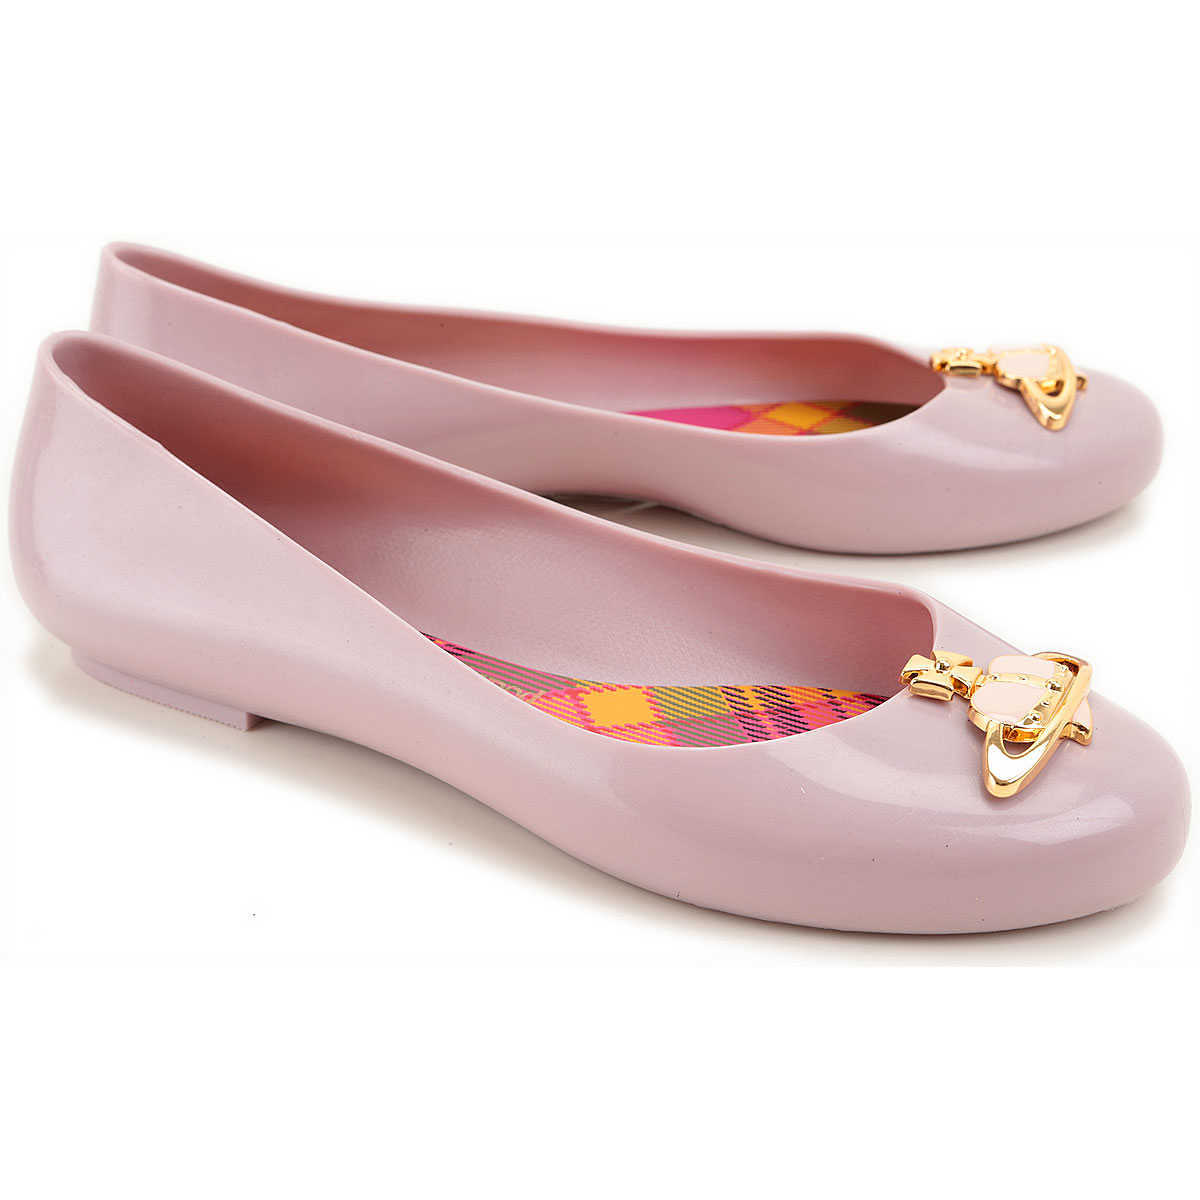 Vivienne Westwood Ballet Flats Ballerina Shoes for Women Anglomania + Melissa DK - GOOFASH - Womens BALLERINAS